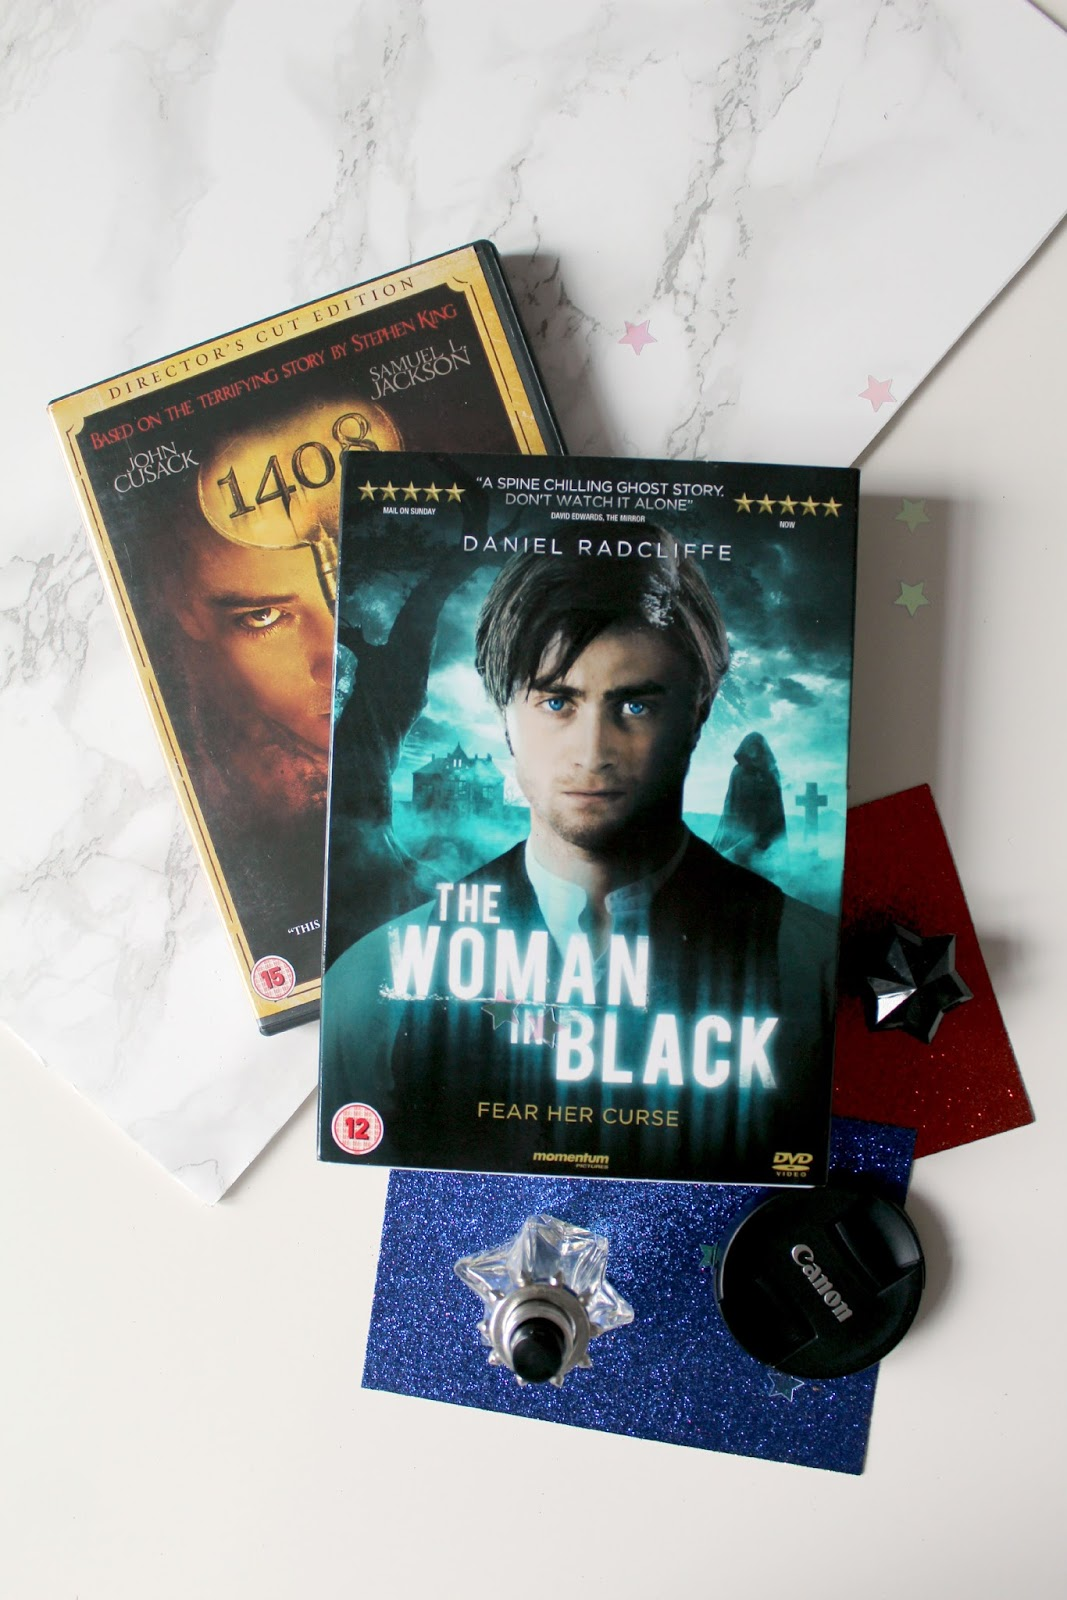 horror films worth watching, best horror films, 1408, the woman in black,